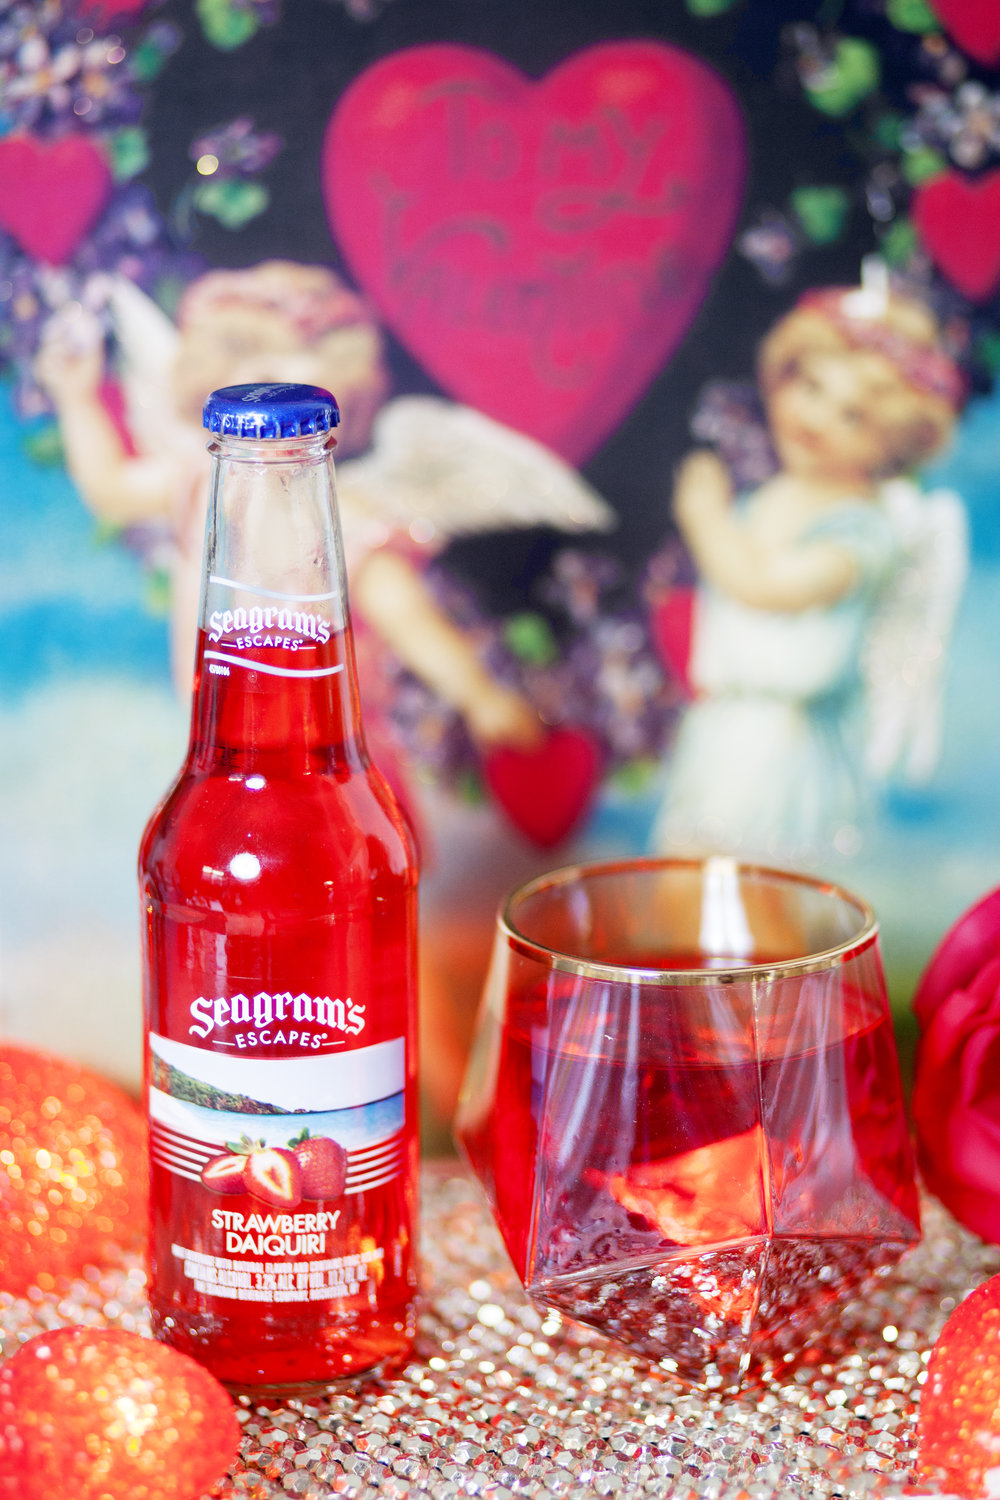 Seagram's Escapes Strawberry Daiquiri